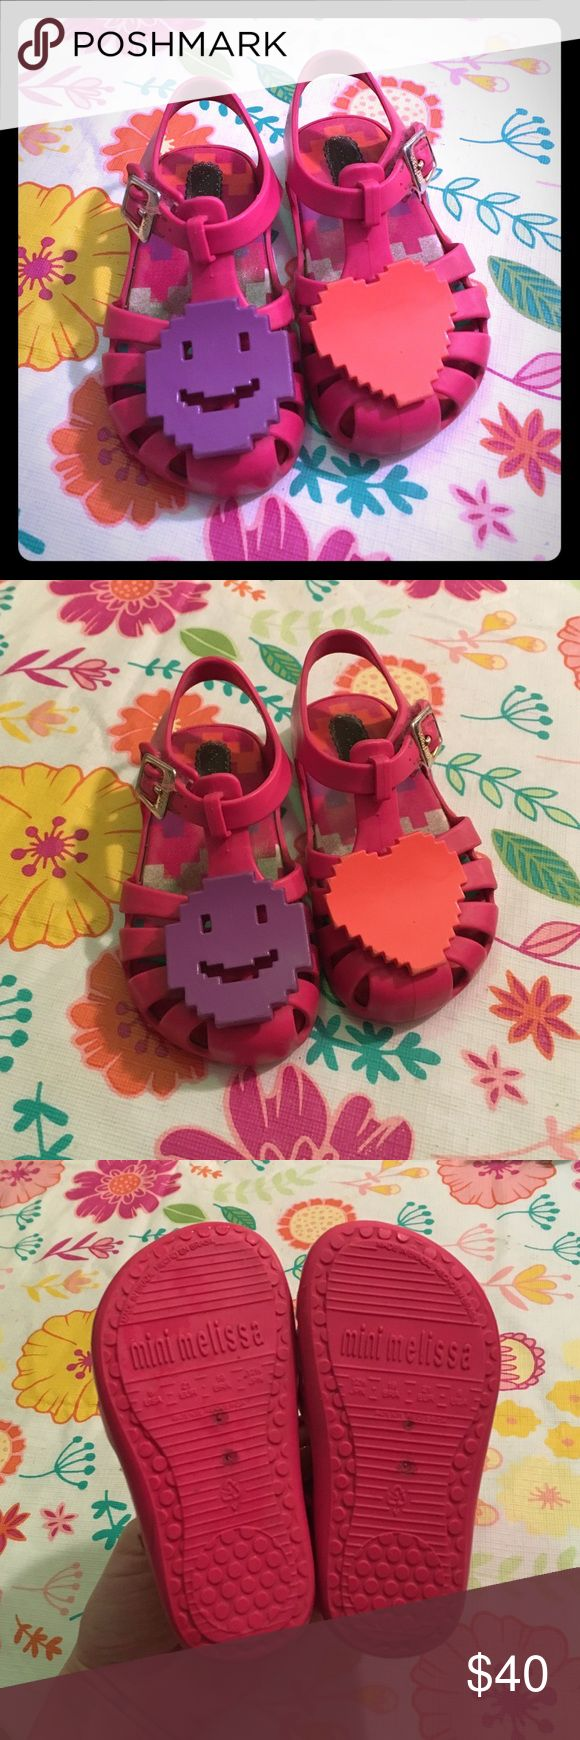 Mini Melissa Hot Pink Sandals My daughter grew out of them and they definitely won't fit next season! Mini Melissa Shoes Sandals & Flip Flops